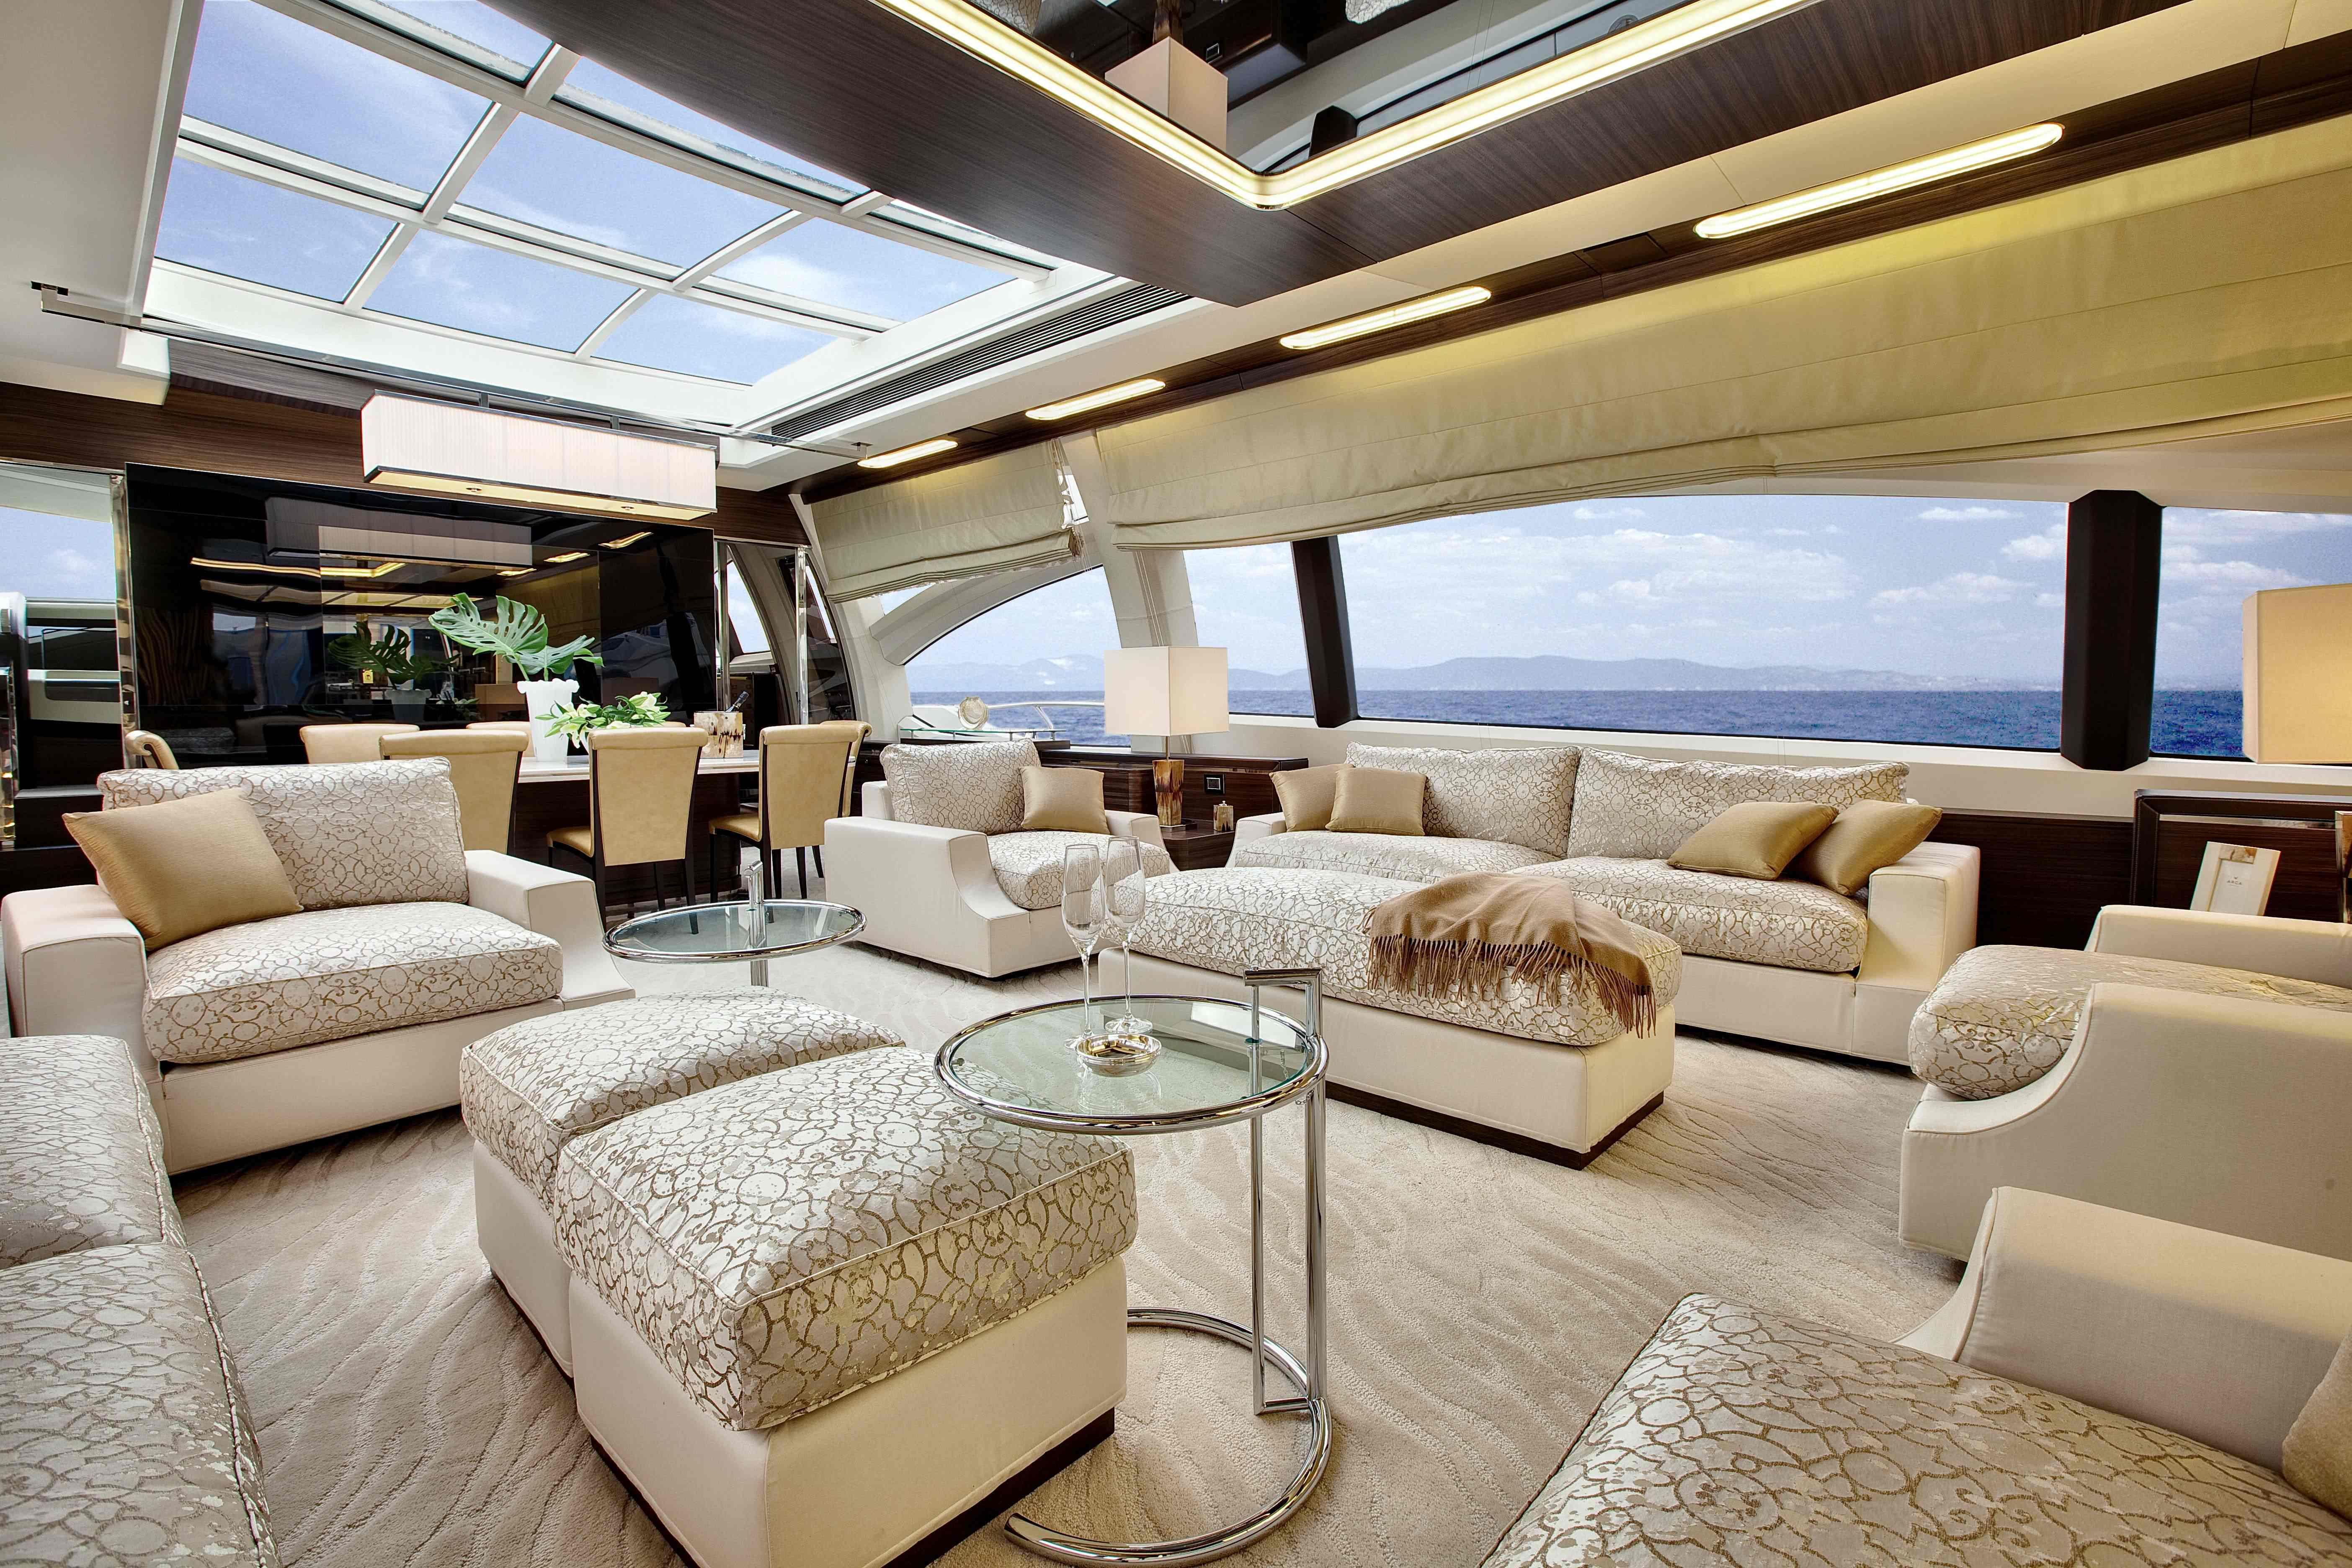 Astonishing Inside Private Jet With The Rear Cabin Has Two Single